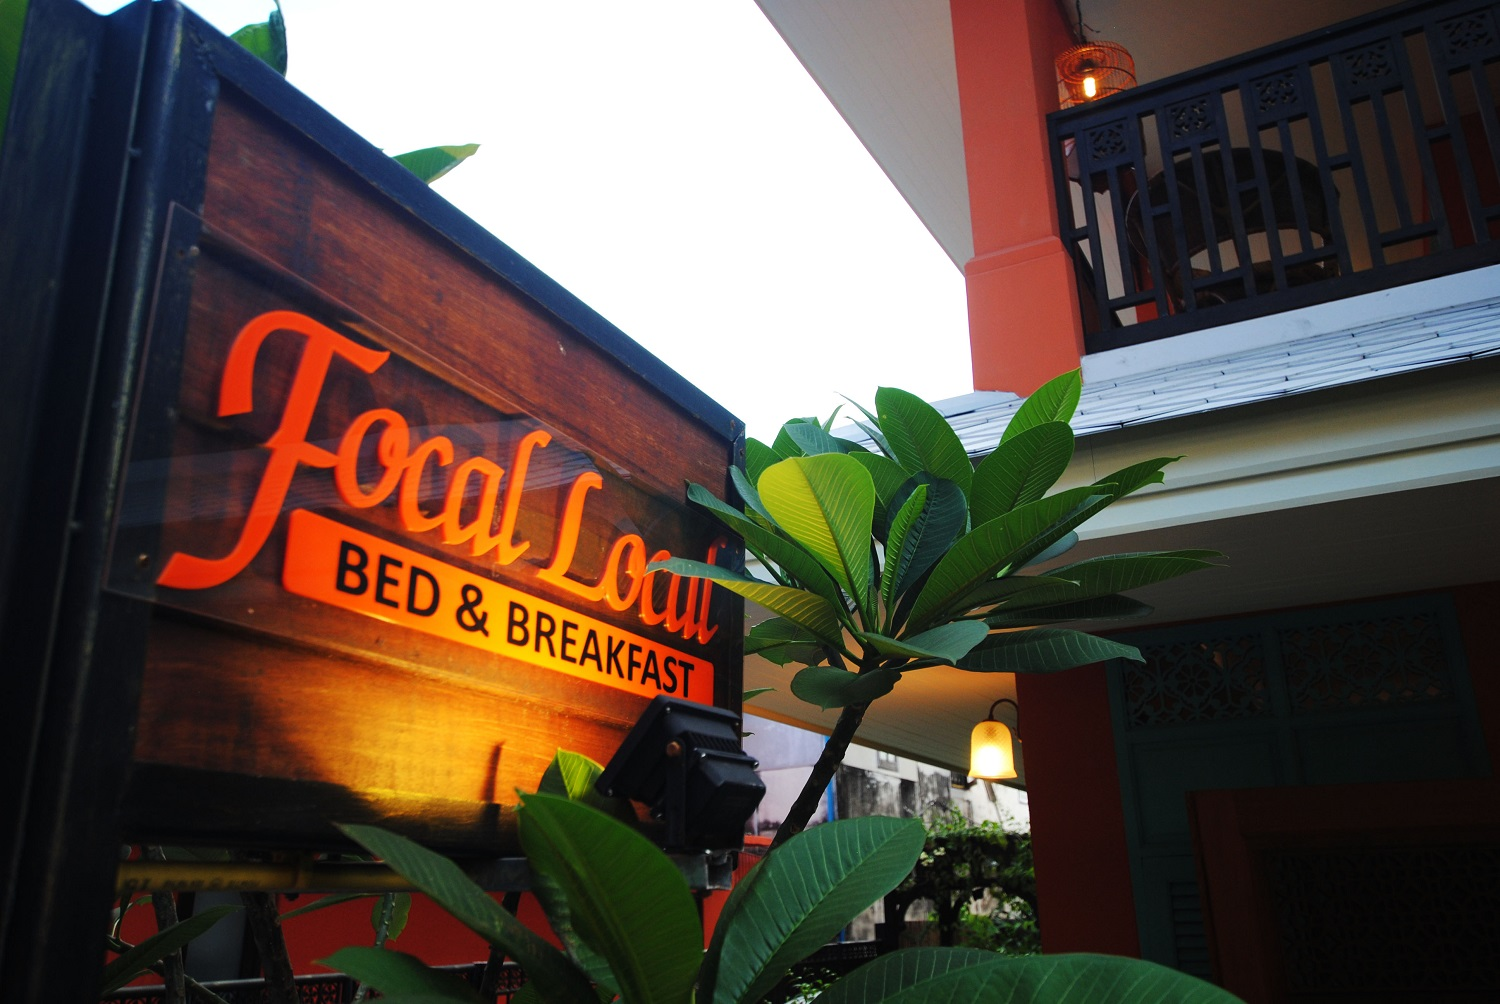 Focal Local Bed & Breakfast